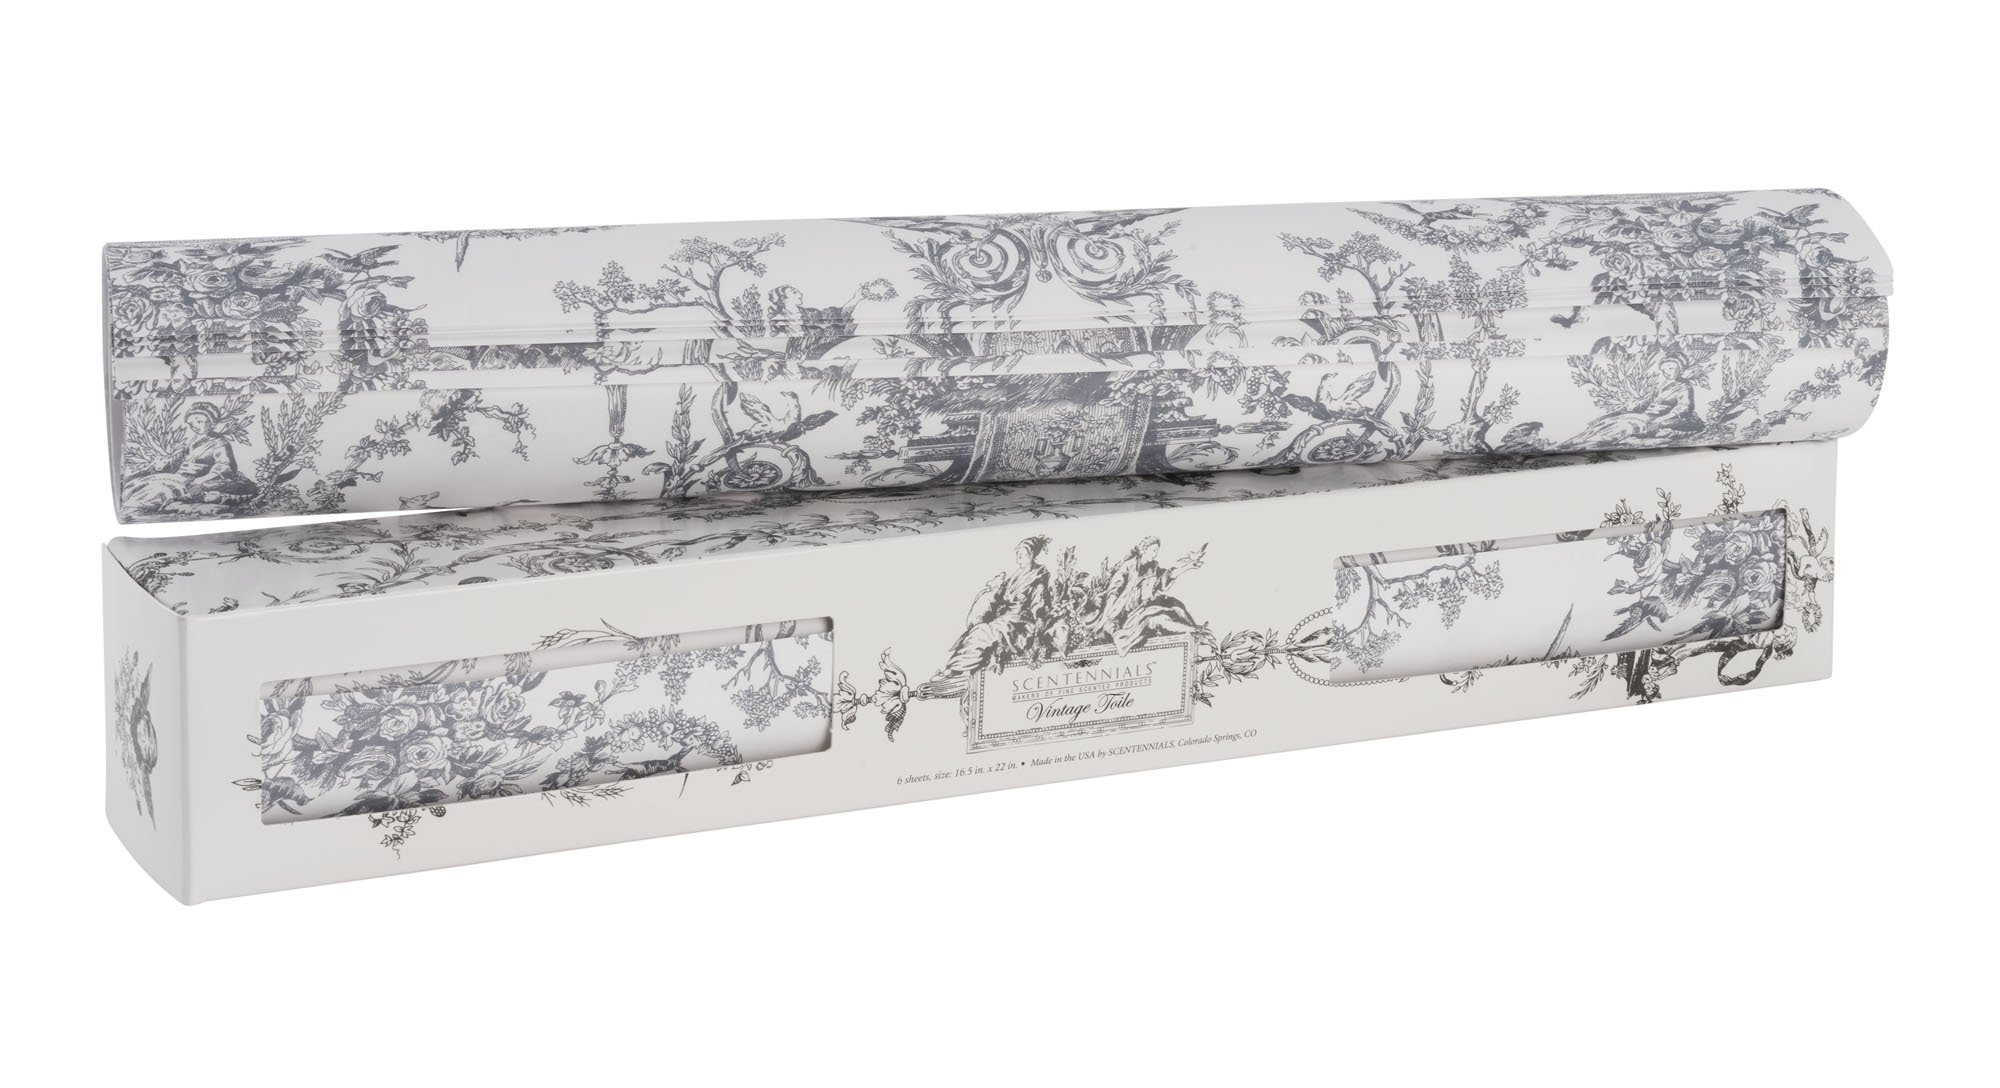 Scentennials Vintage Toile Gray (12 Sheets) Scented Drawer Liners by Scentennials Scented Drawer Liners